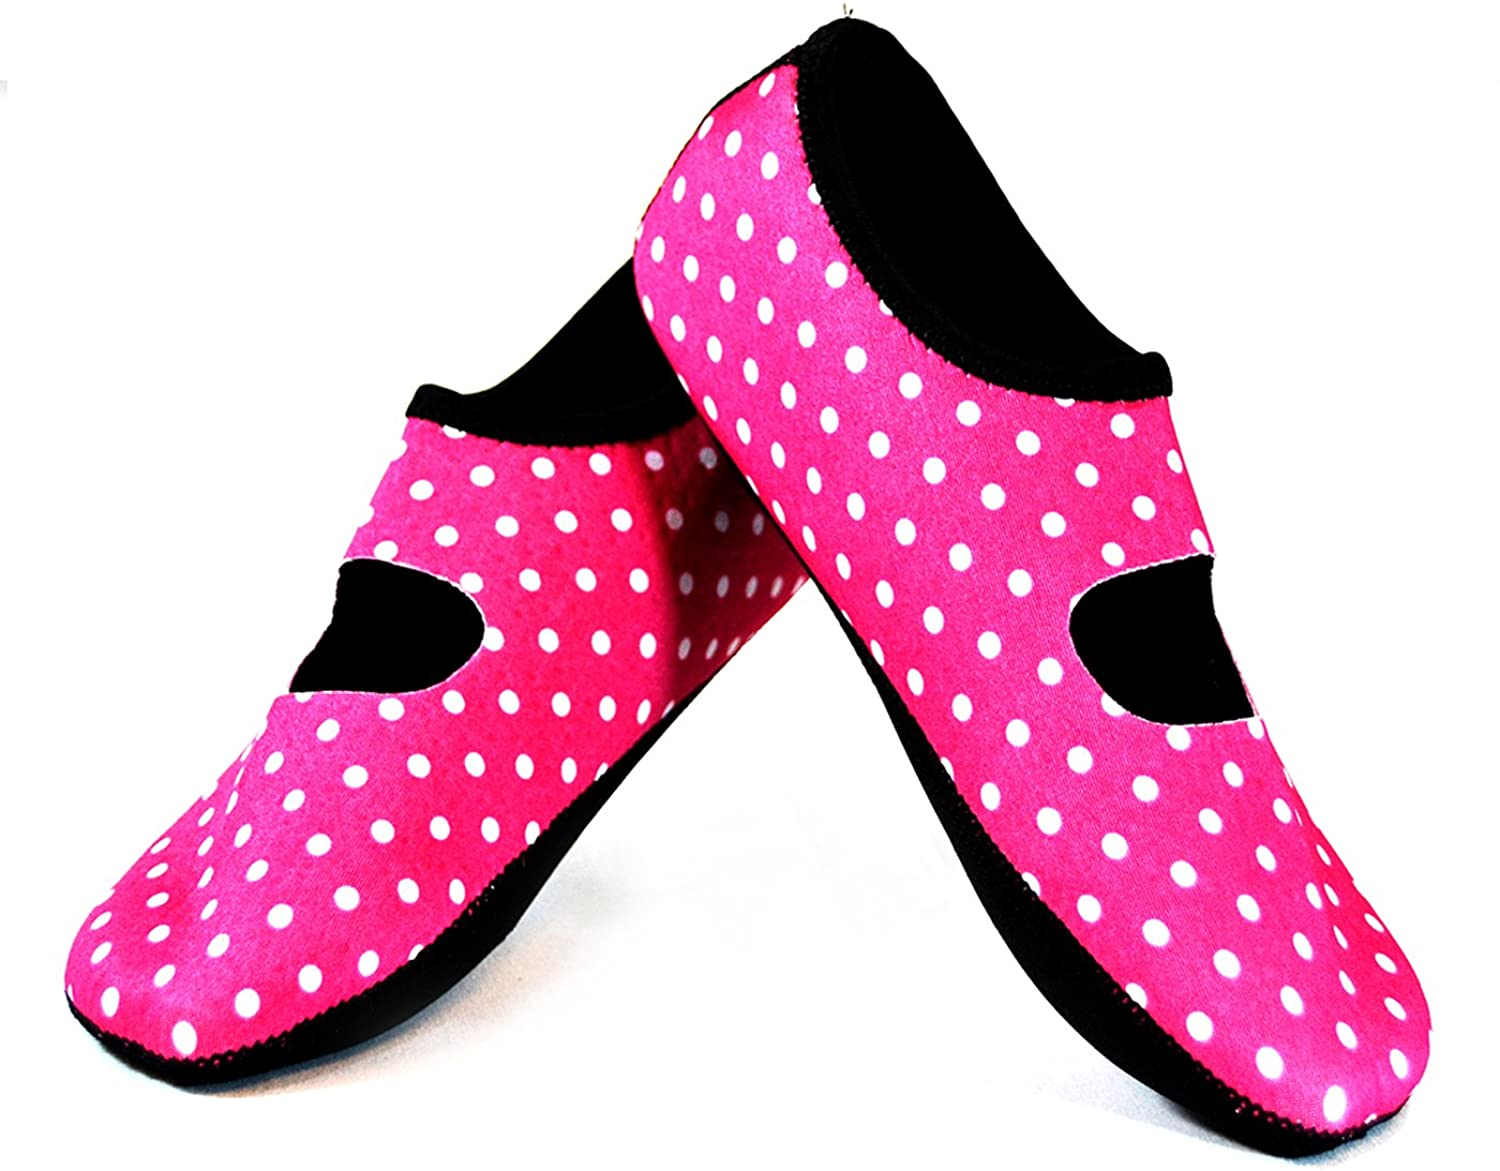 NuFoot Mary Janes Women's shoes, Best Foldable & Flexible Flats, Slipper Socks, Travel Slippers & Exercise shoes, Dance shoes, Yoga Socks, House shoes, Indoor Slippers, Pink Polka Dots, Small